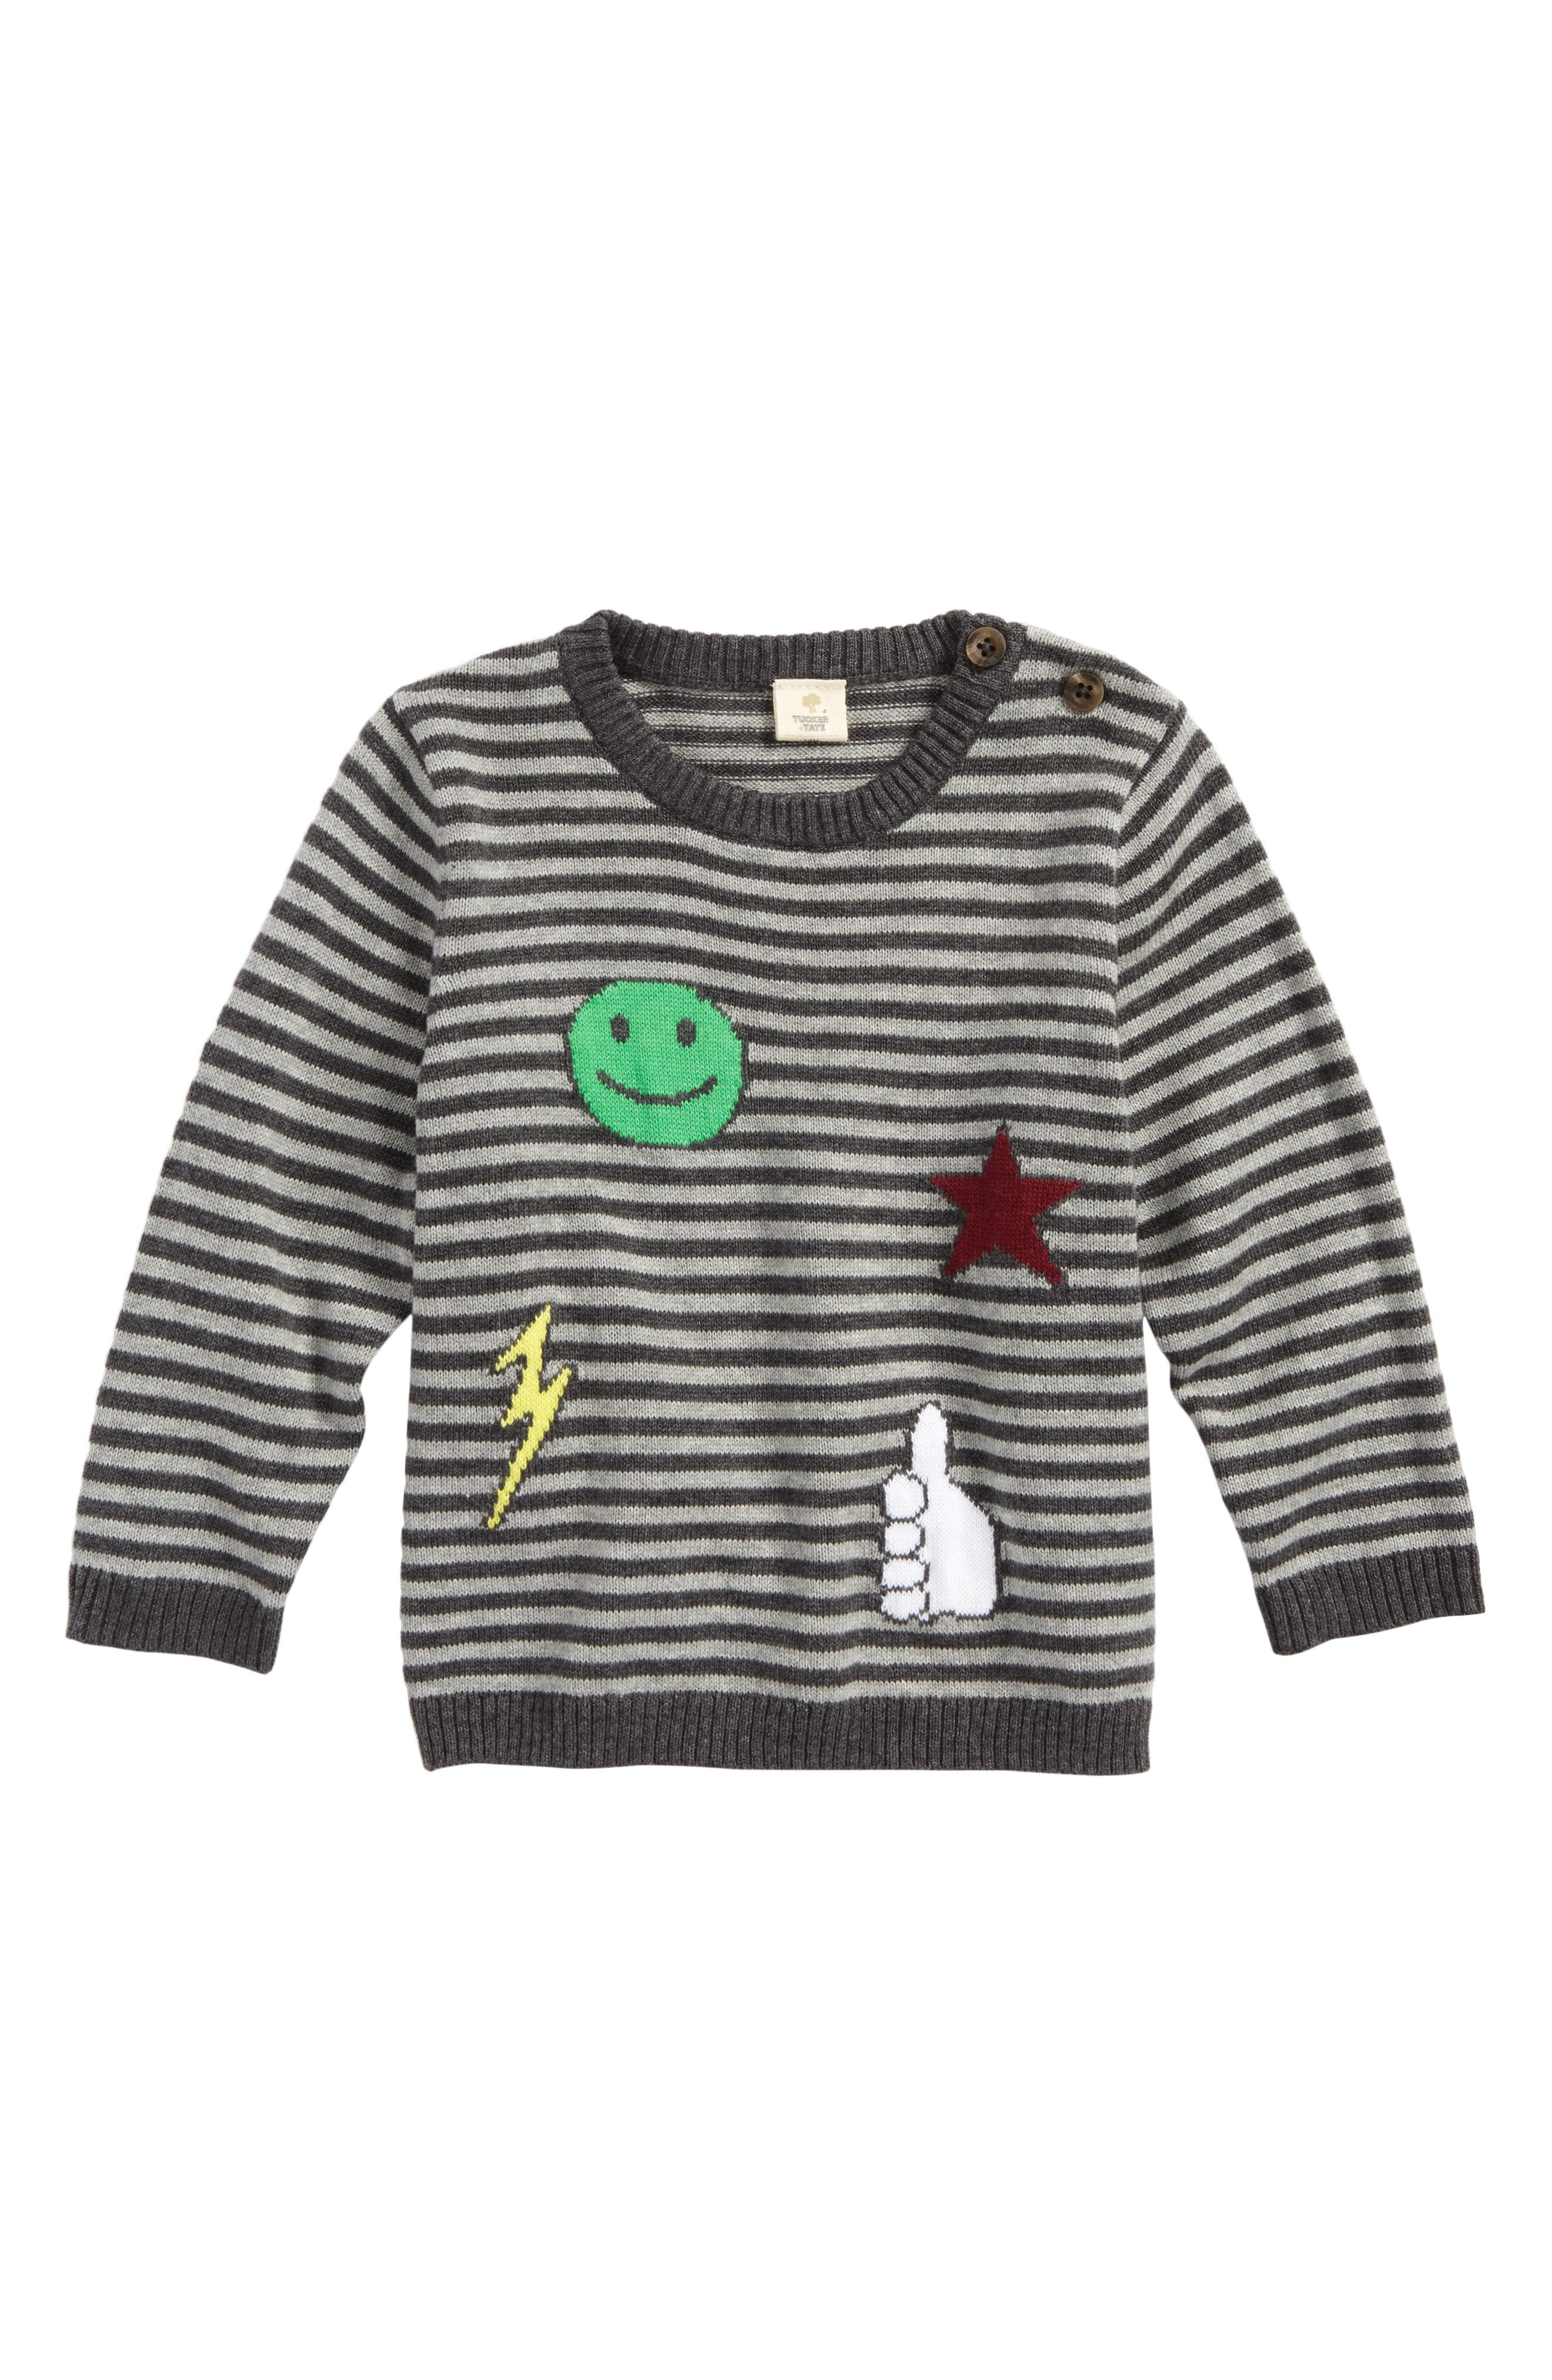 Intarsia Patches Sweater,                         Main,                         color, Grey Castlerock Stripe Patches